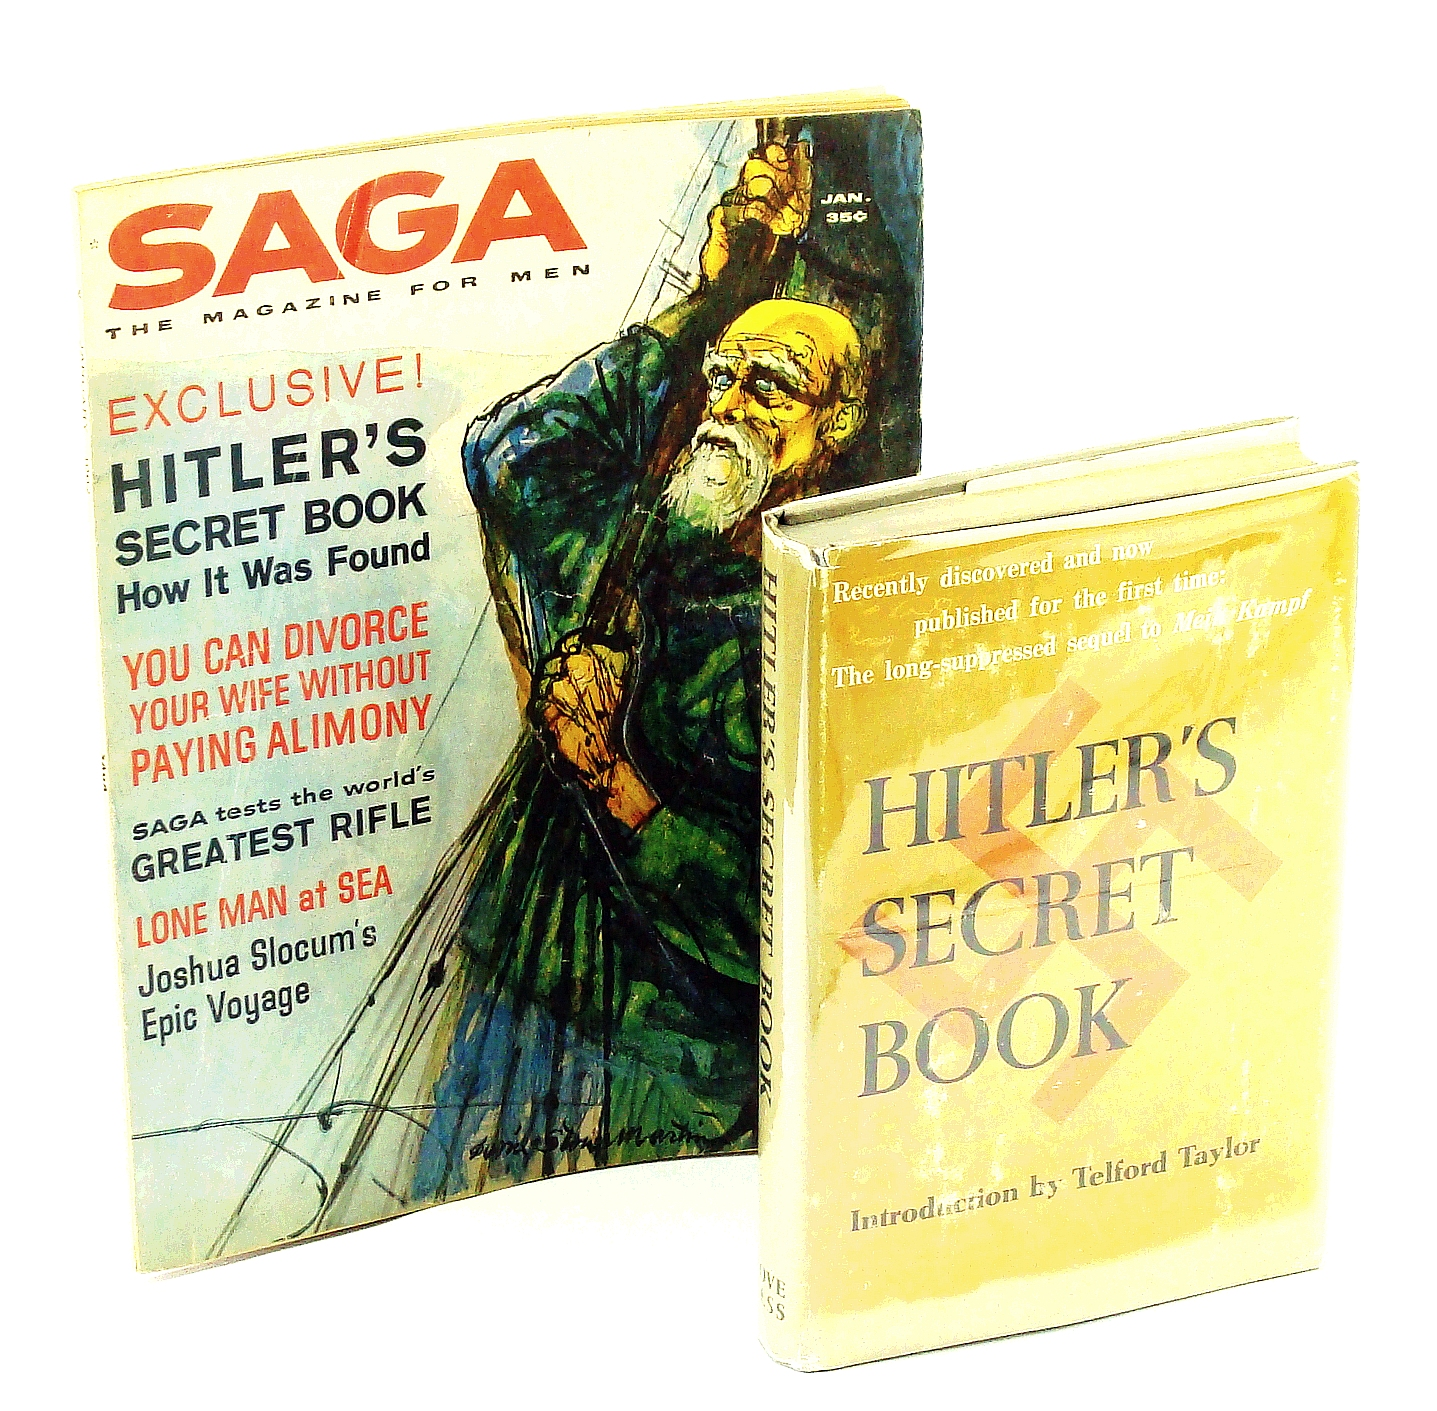 Image for Hitler's Secret Book (First Edition) + Saga Magazine, January 1962 Containing the Exclusive Story of How This Book Was Discovered